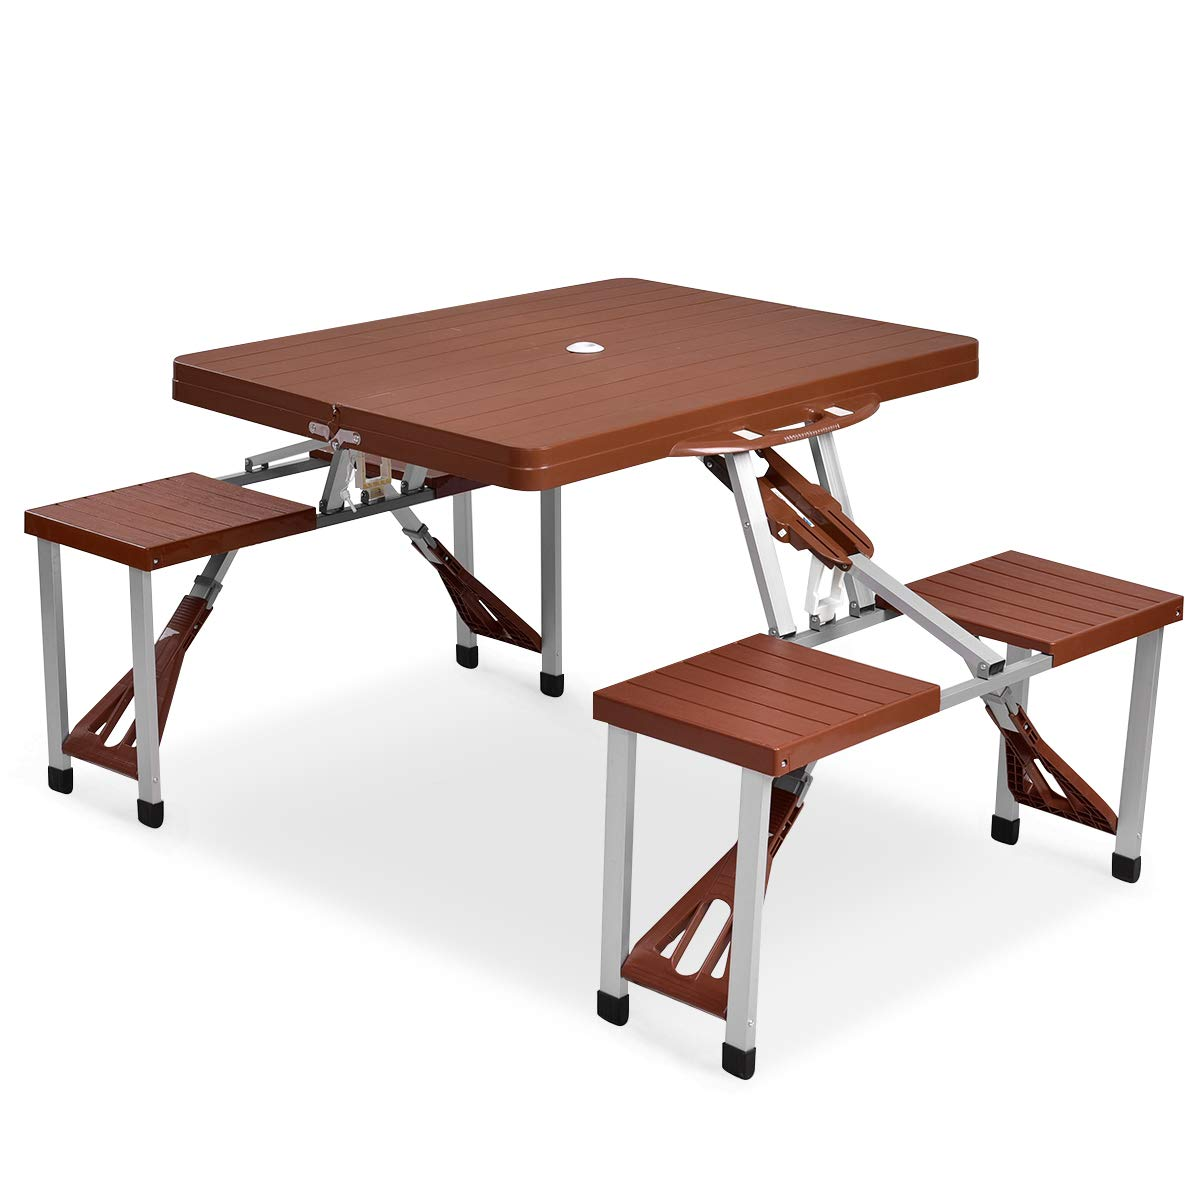 Giantex Portable Folding Picnic Table with Seating for 4 Garden Party Camping Time Design Brown